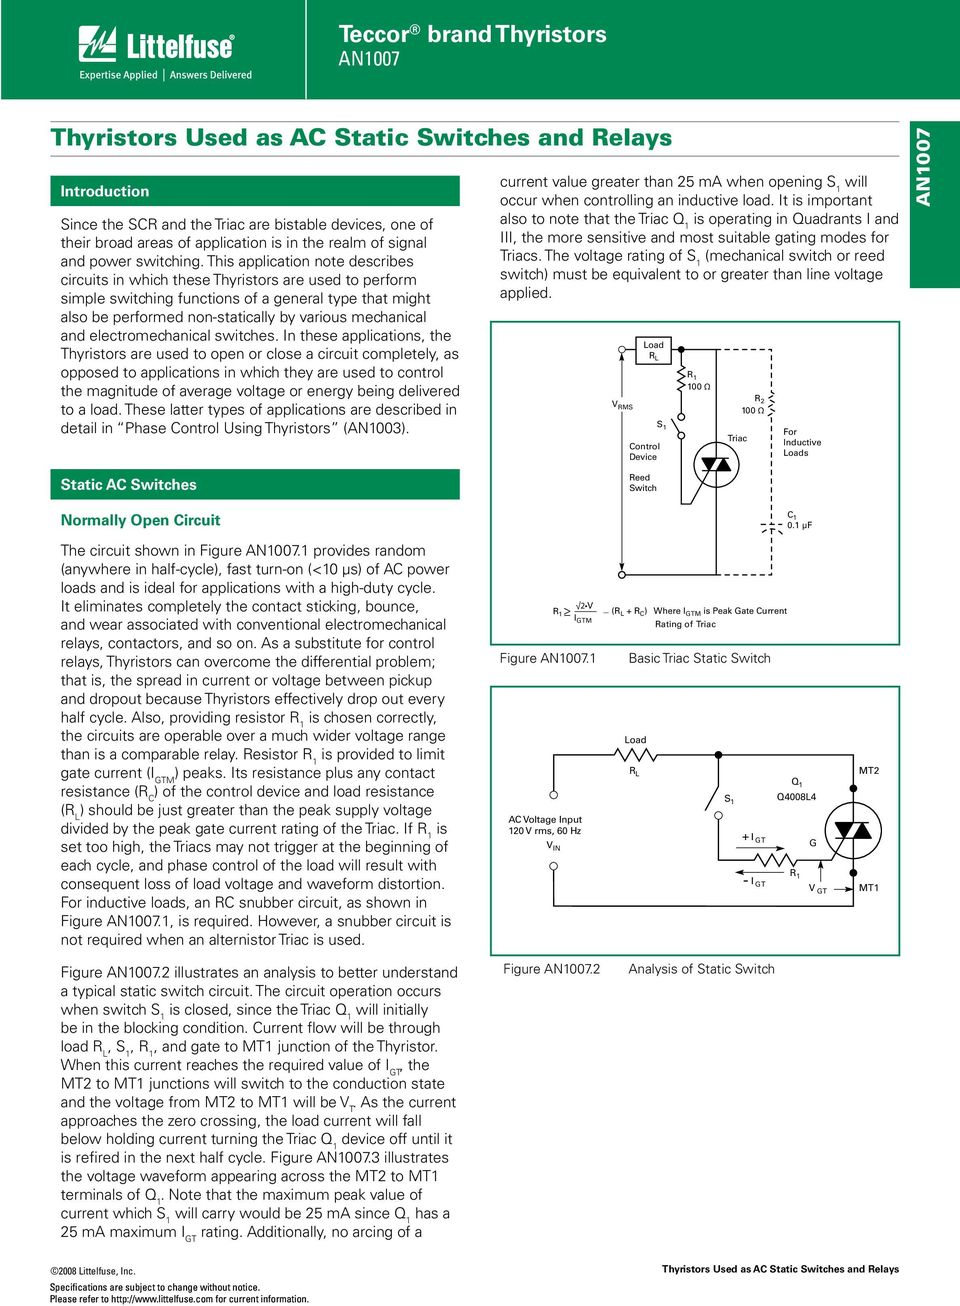 Teccor Brand Thyristors An Pdf Dc Control For Triacs And Electromechanical Switches